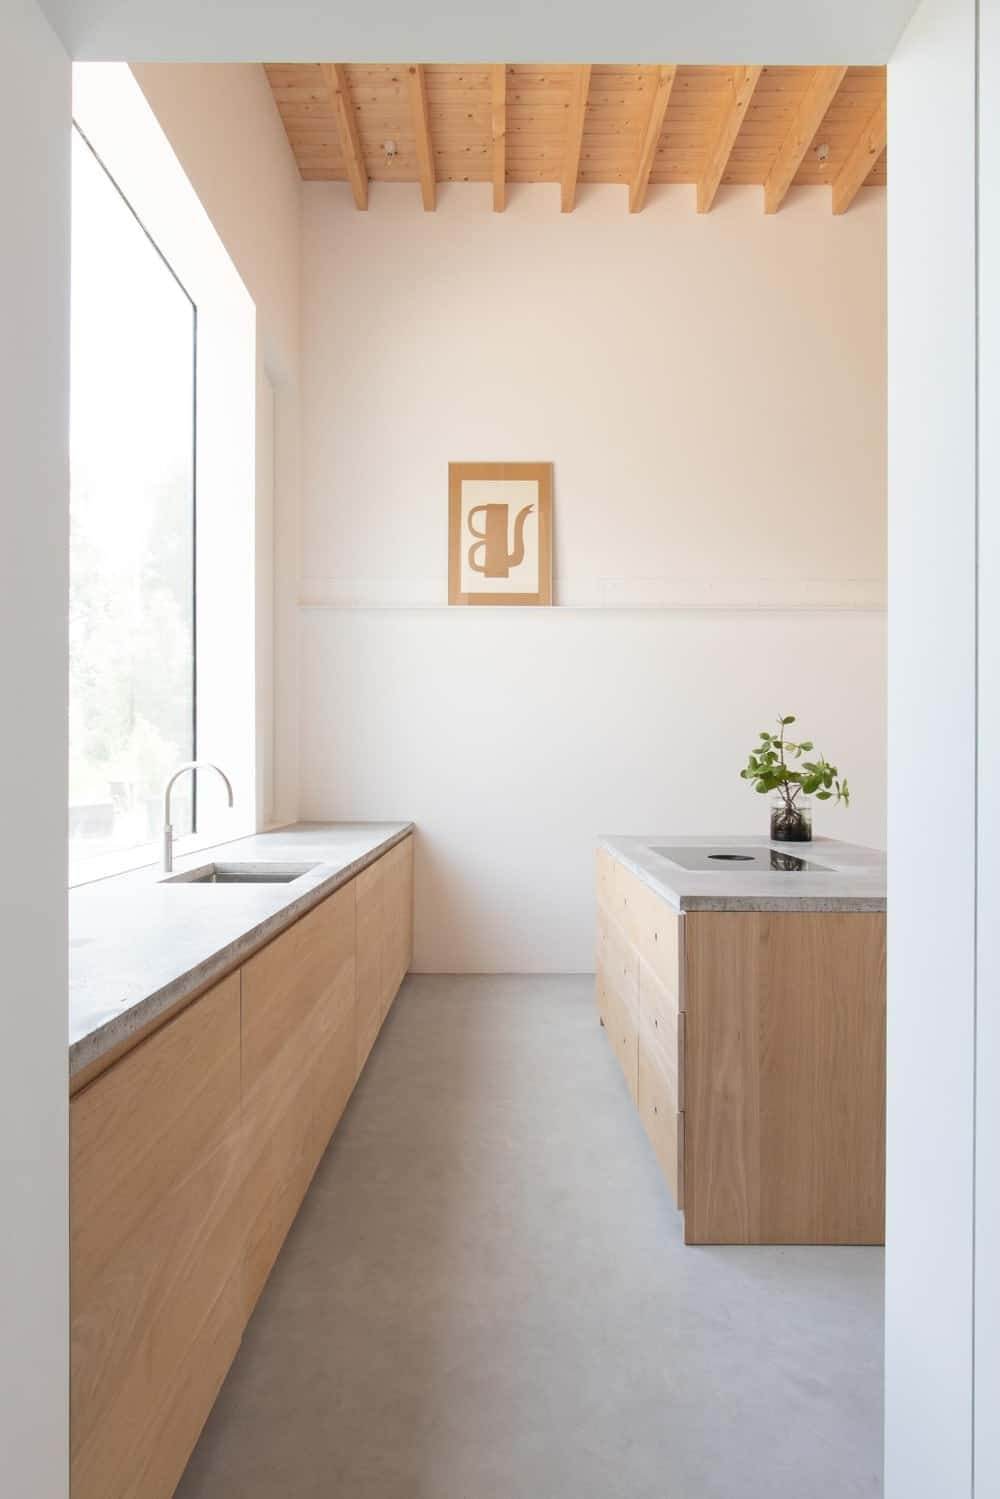 The kitchen has a tall wooden beamed ceiling that matches the tone of the wooden cabinetry of the kitchen.